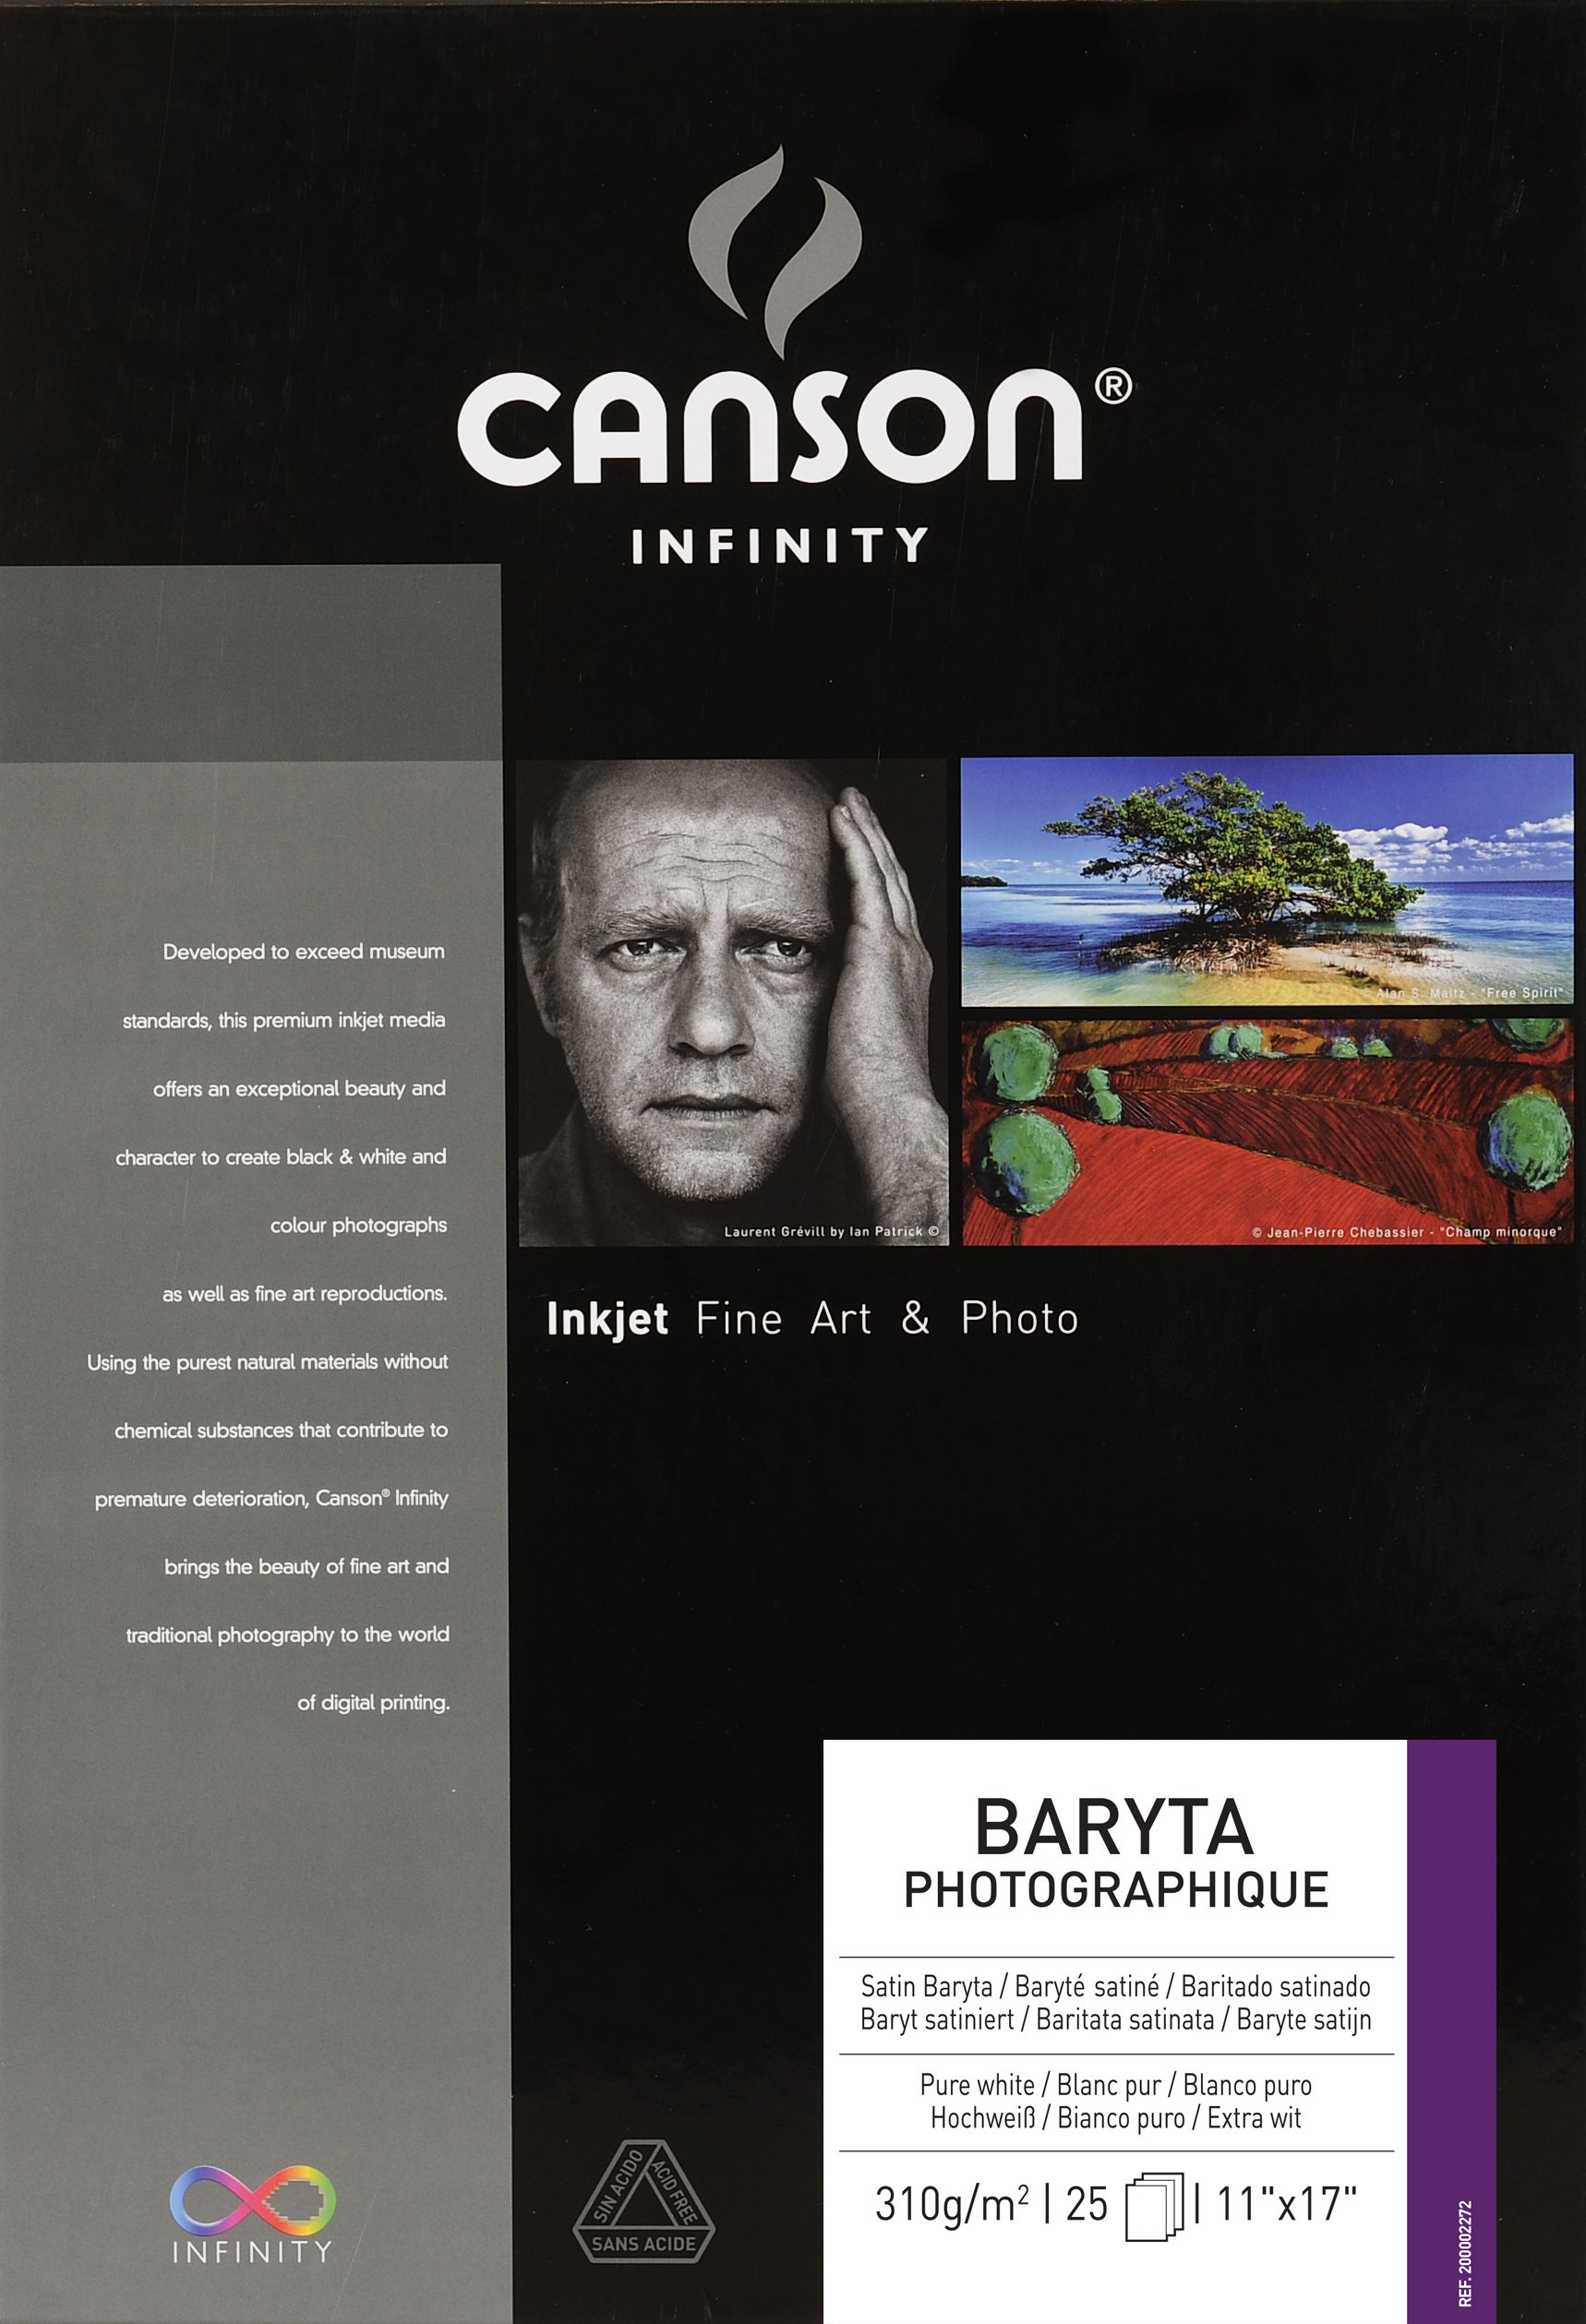 CANSON 200002272 Infinity Baryta Photographique Fine Art Photo Paper, Acid Free, Idea for Inkjet Portraits, 11 x 17 Inch, White, 25 Sheets by Canson